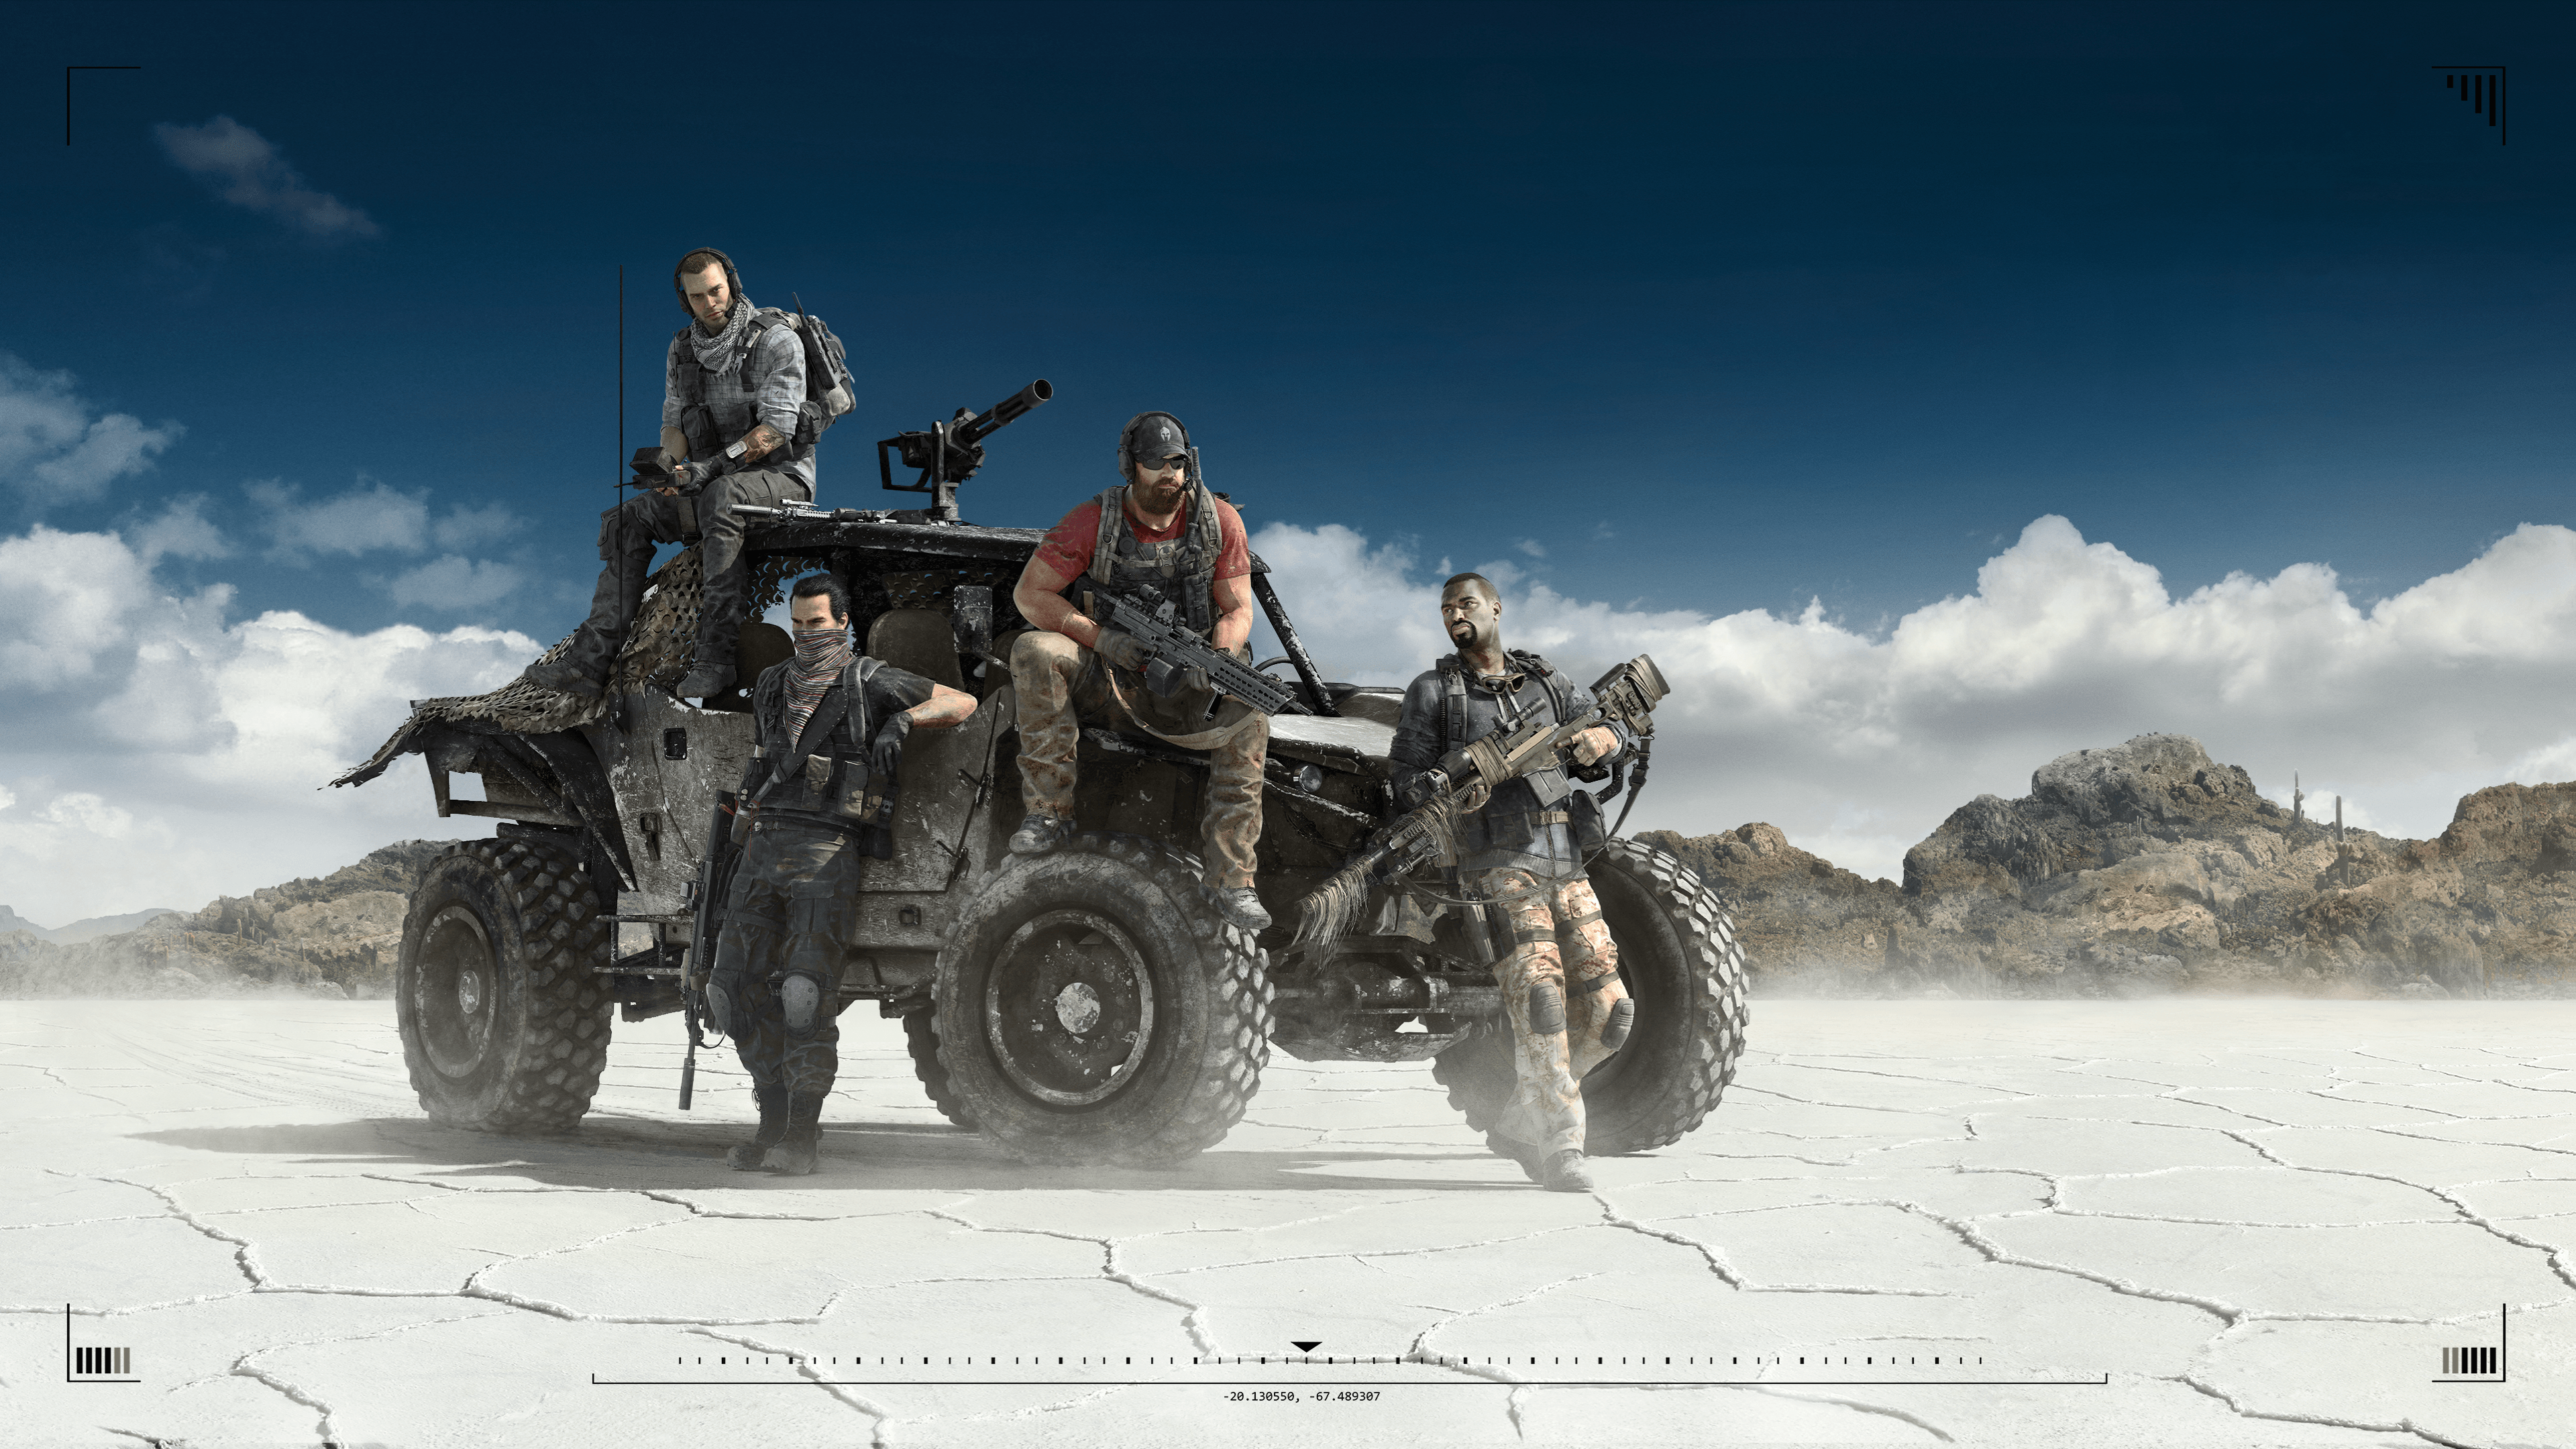 Ghost Recon Wildlands Wallpapers Wallpaper Cave